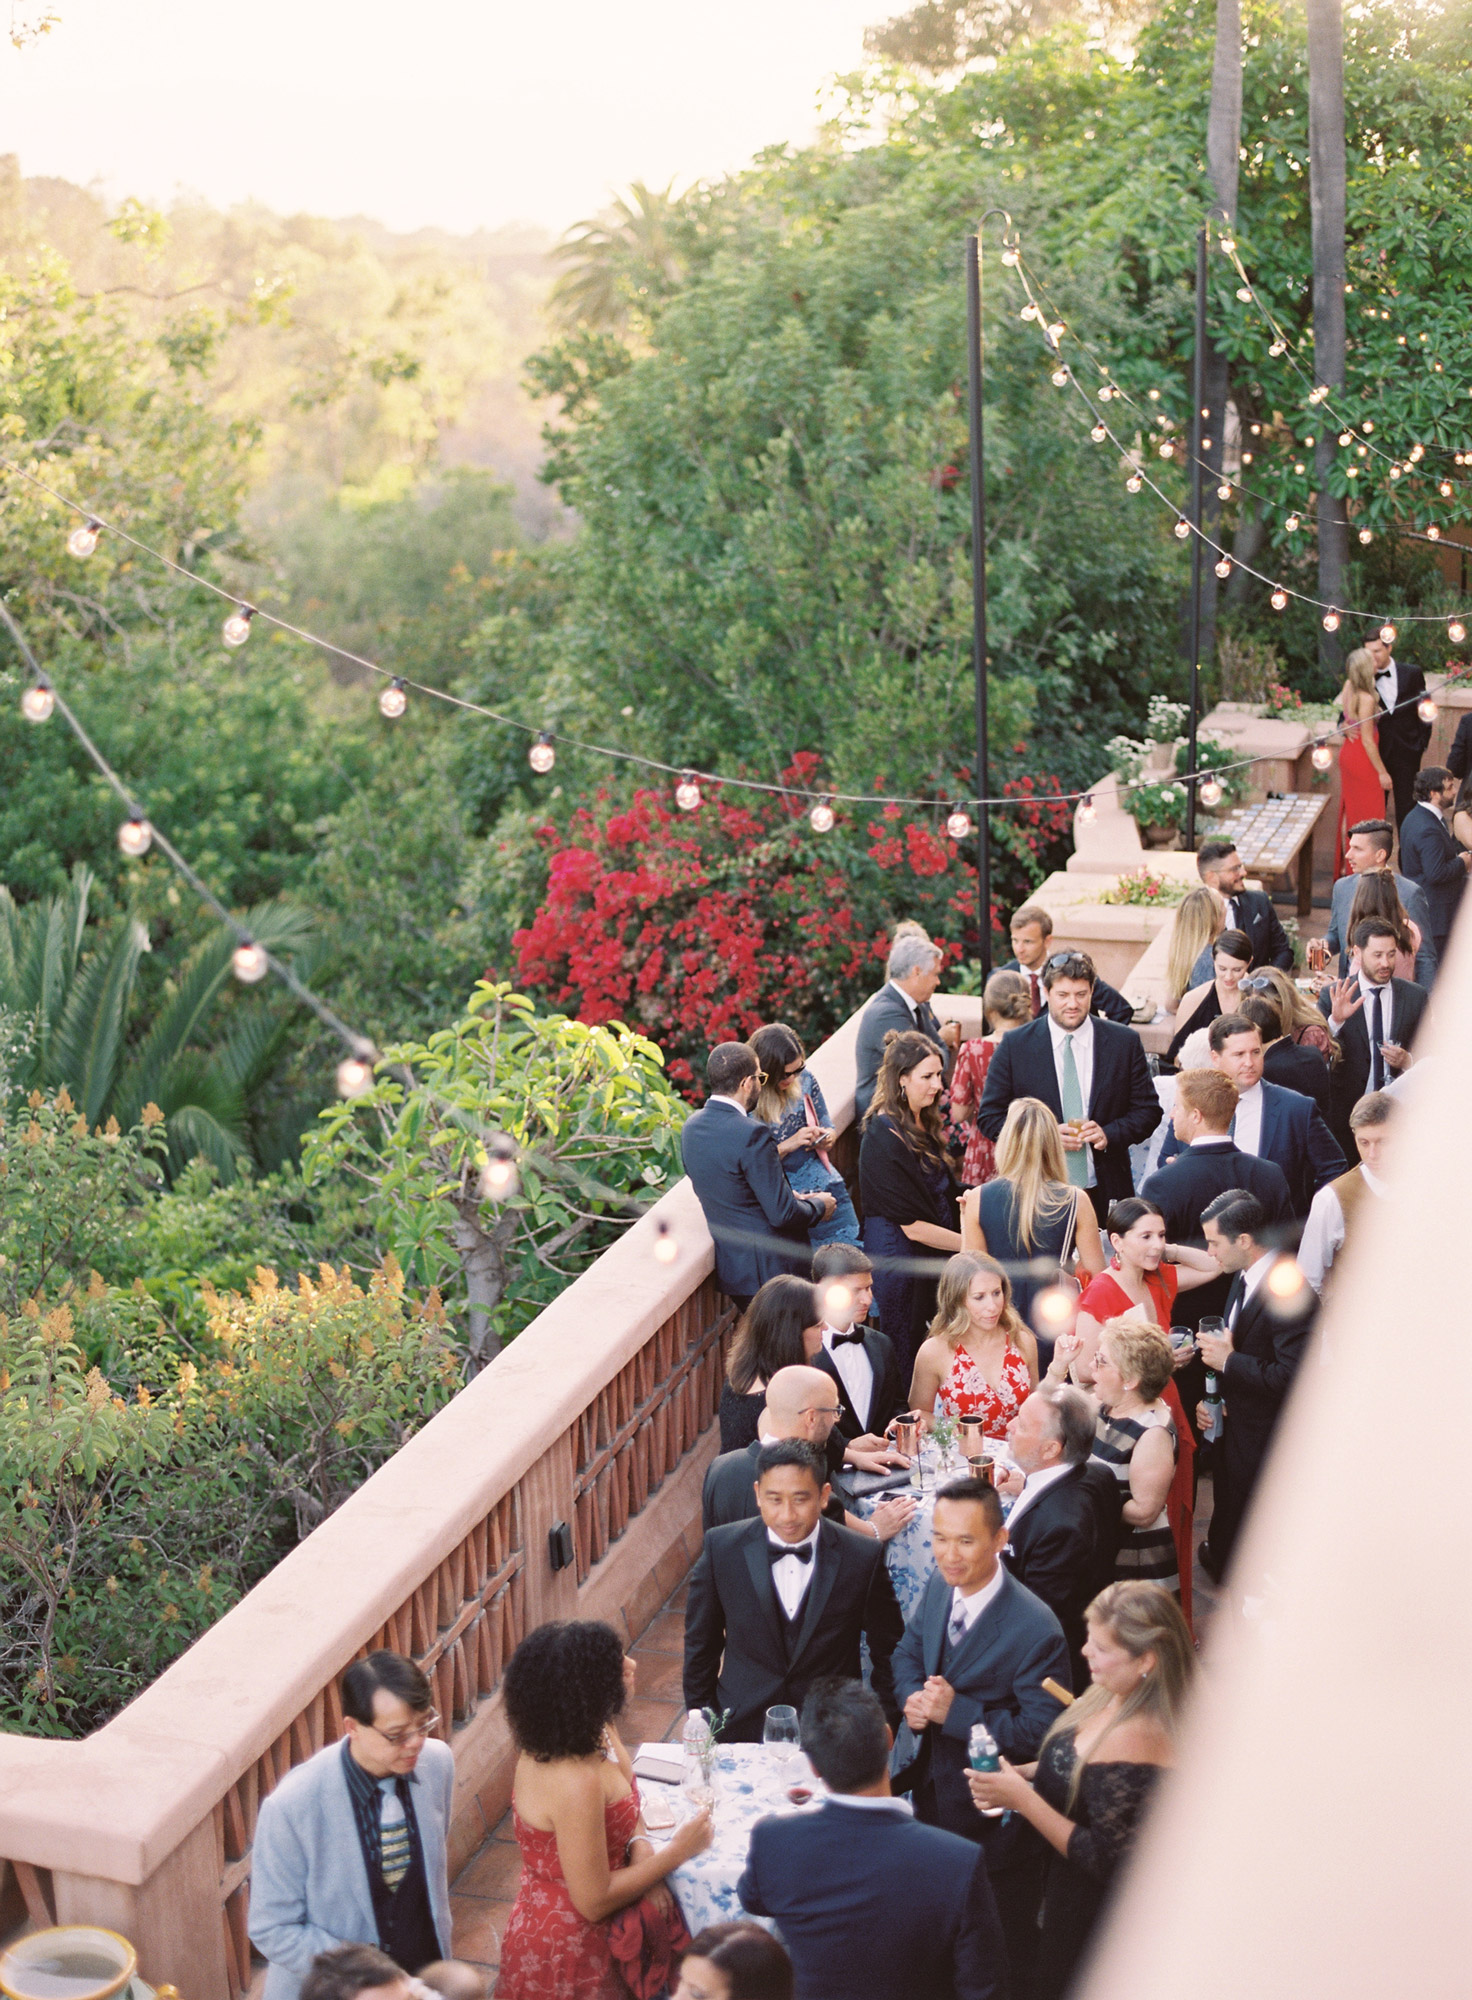 guests on balcony for cocktail hour